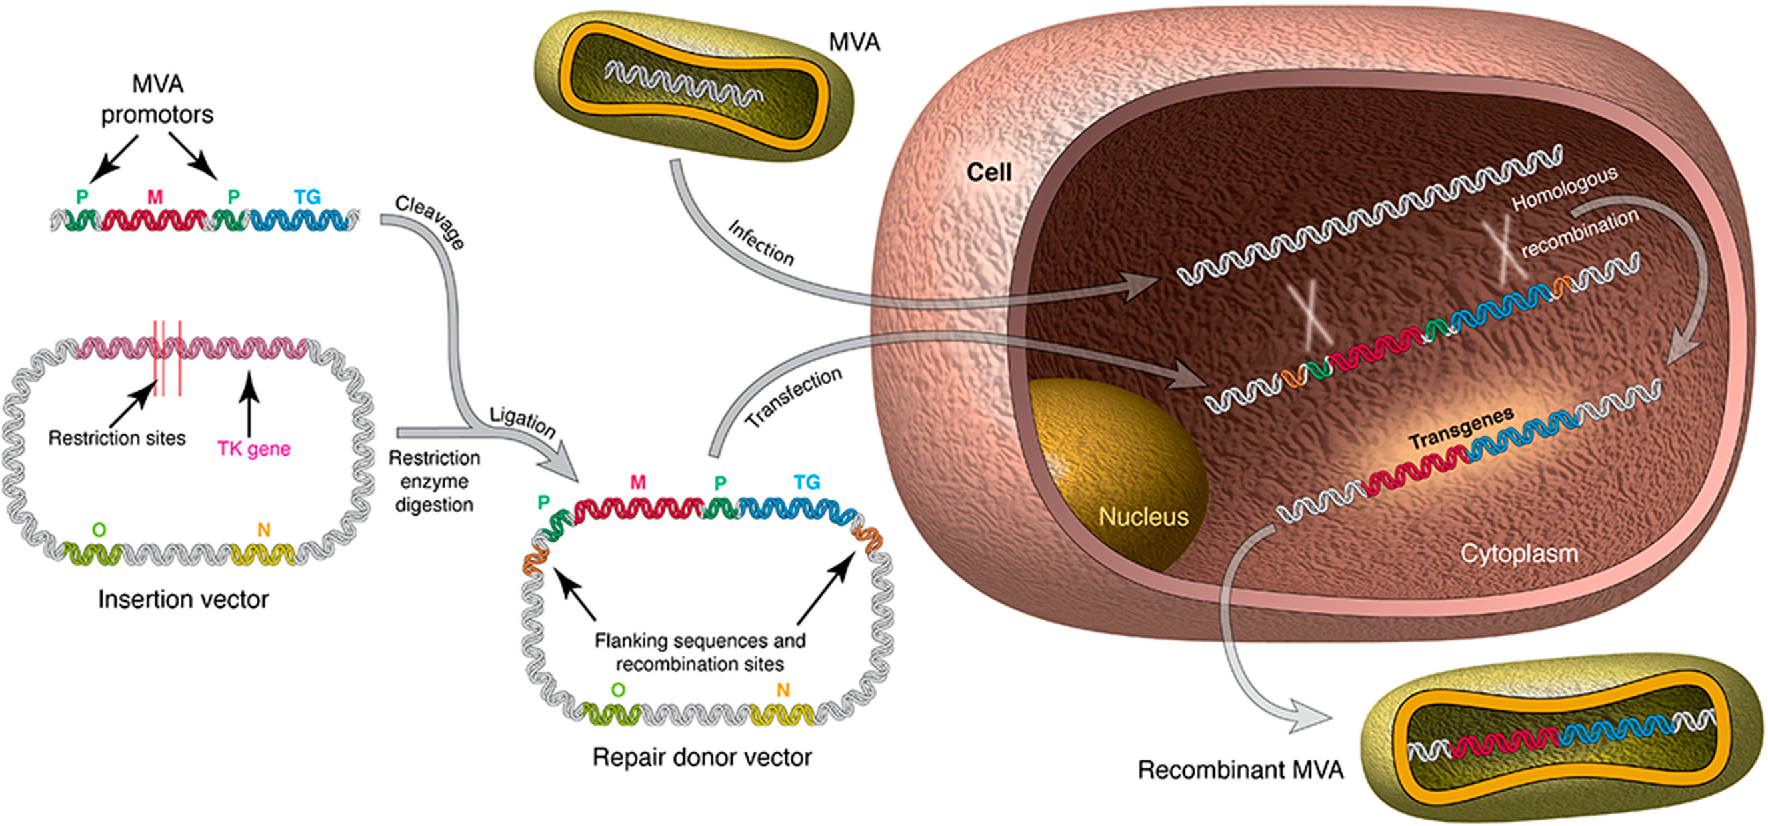 crispr/cas9-mediated genome editing of herpesviruses limits productive and latent infections